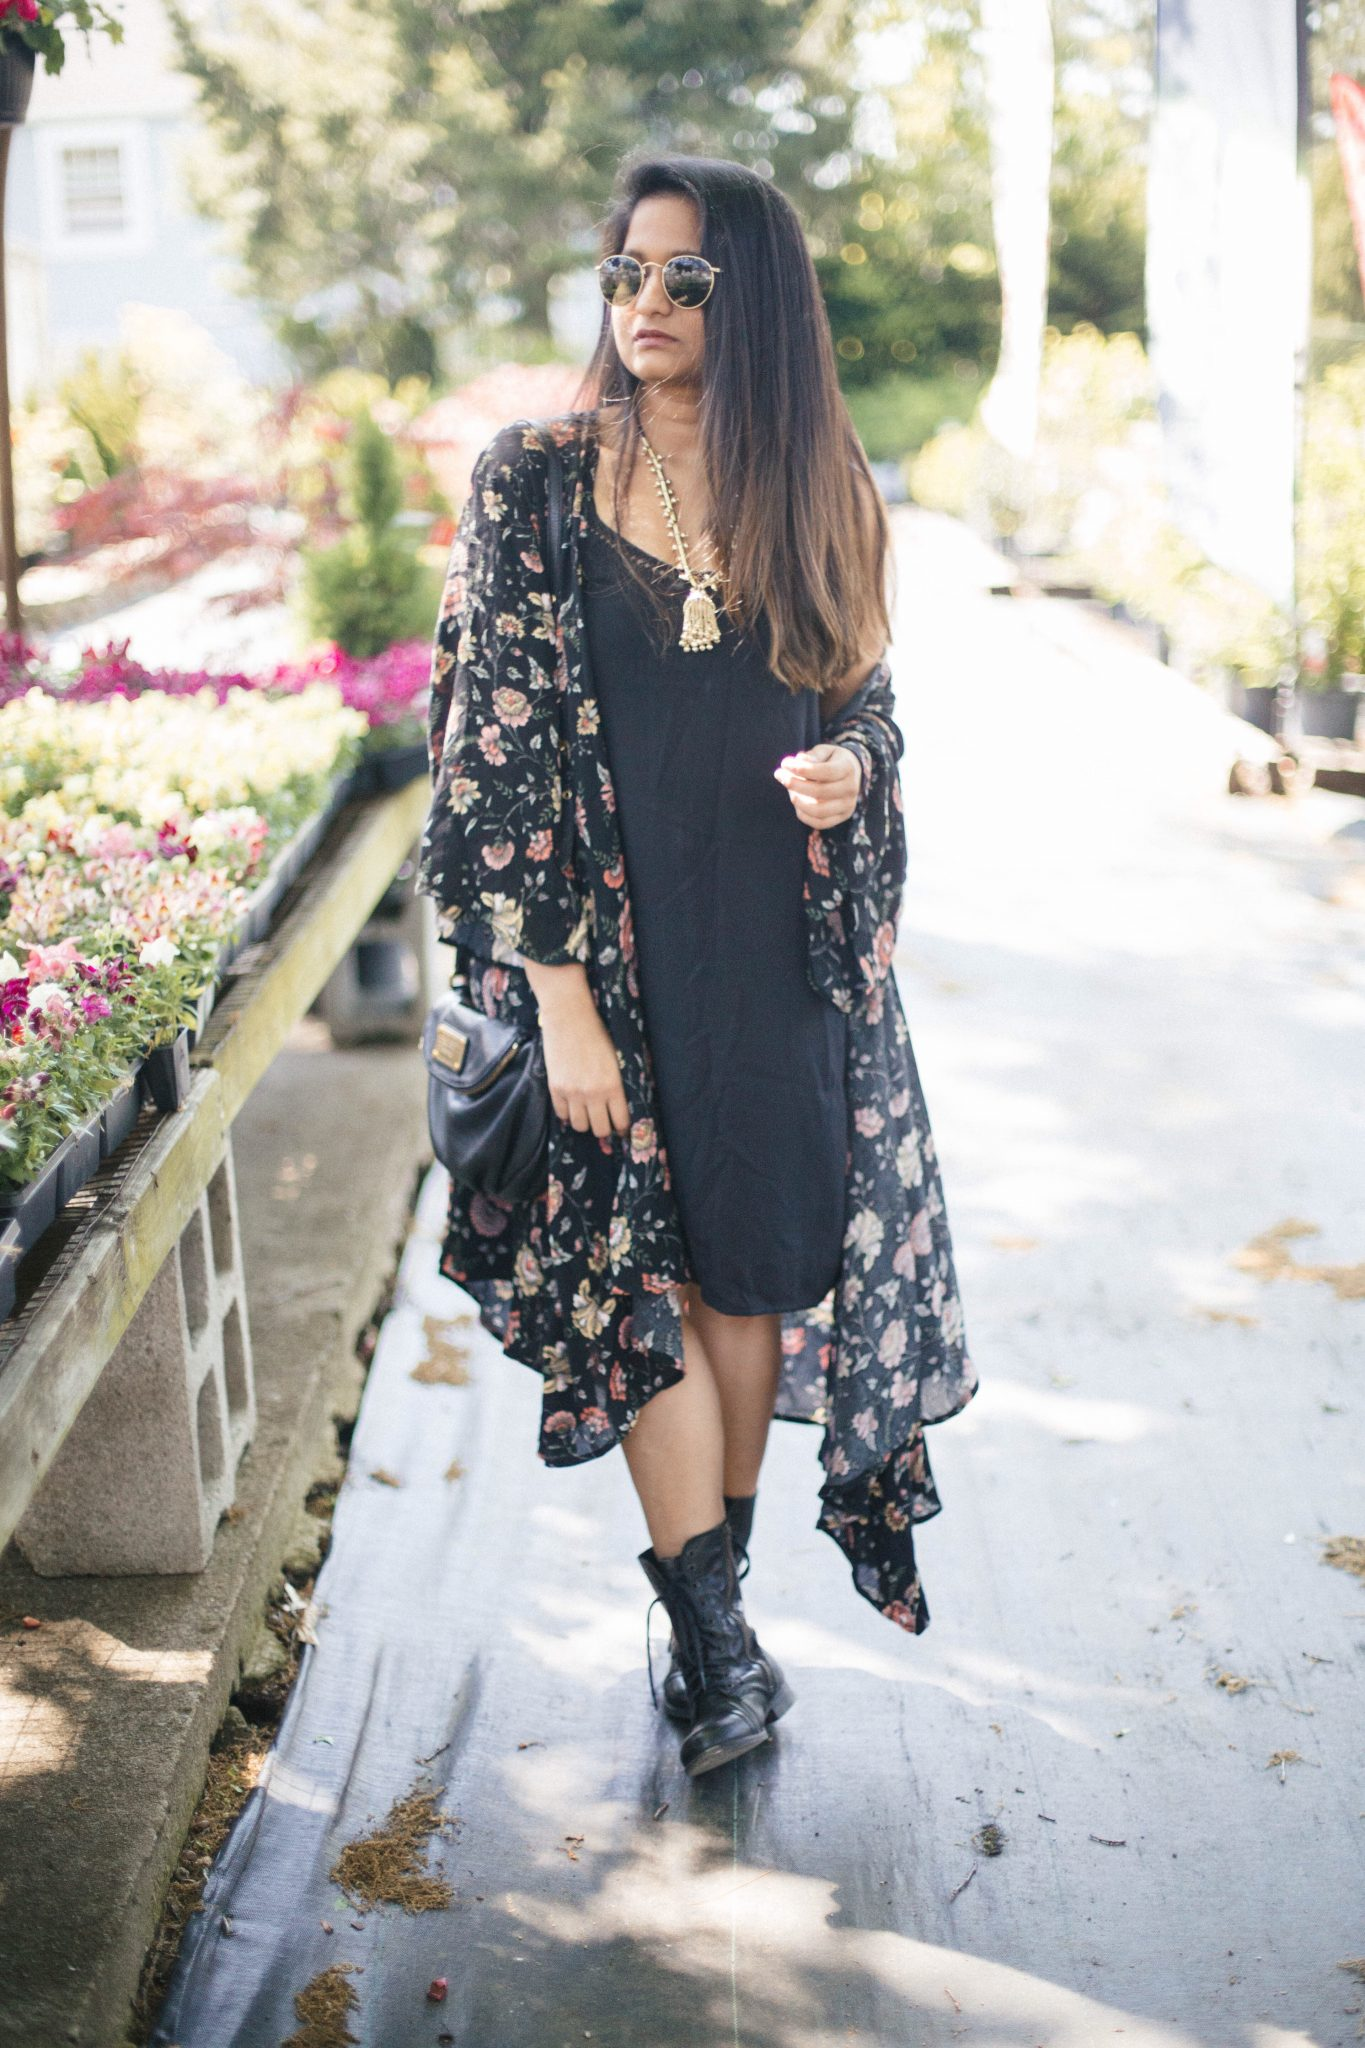 Merona-floral-kimono - Spring to Summer Instagram Outfits featured by popular Ohio modest fashion blogger, Dreaming Loud